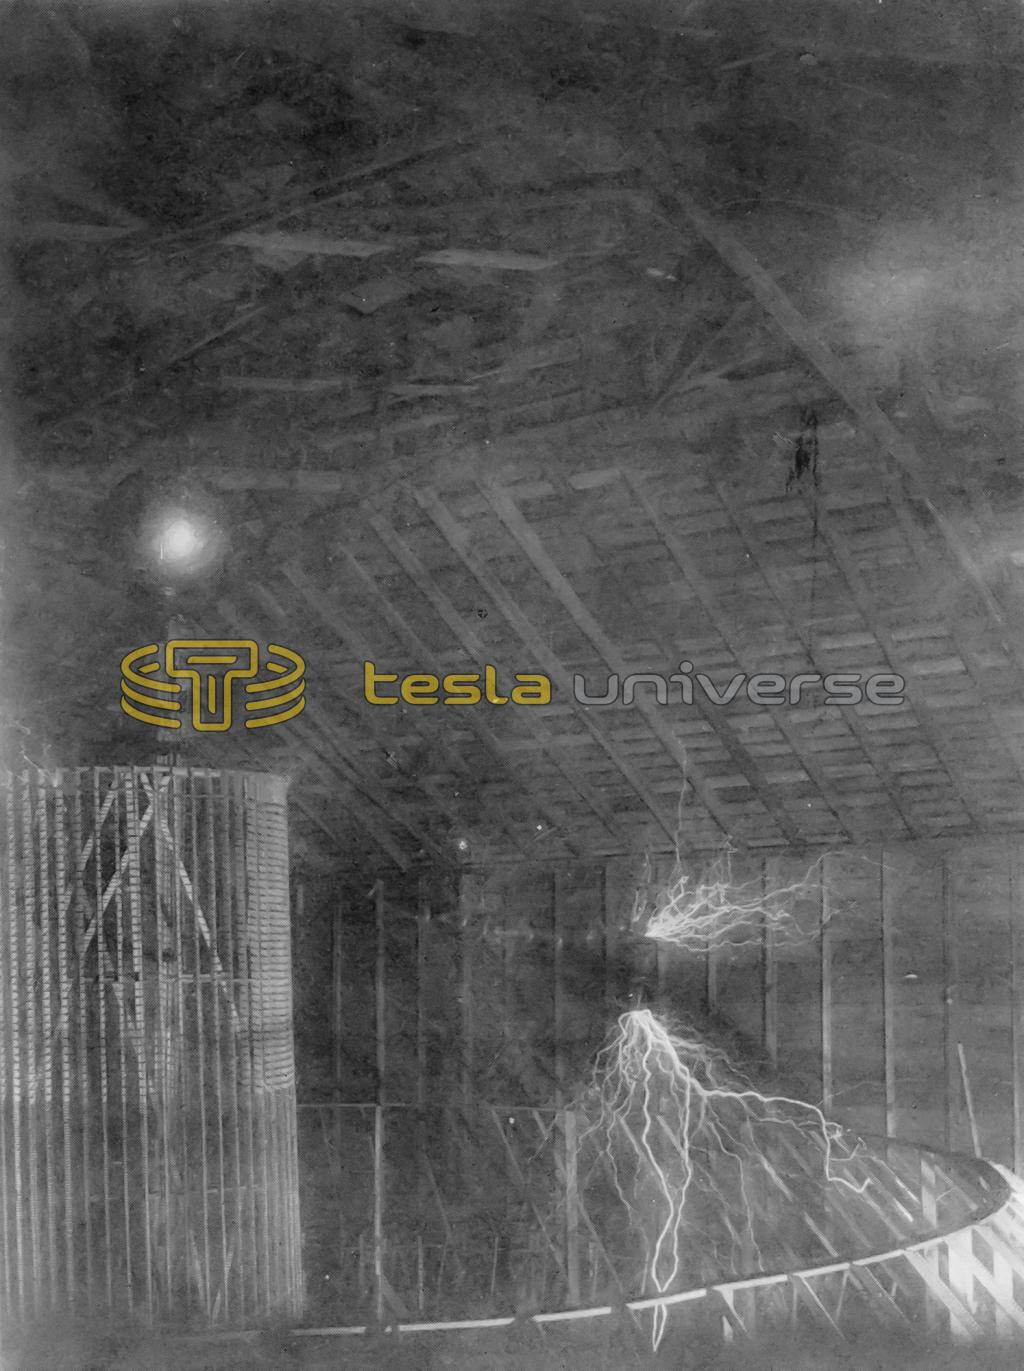 Tesla's Colorado Springs oscillator at low power and ceiling detail of lab